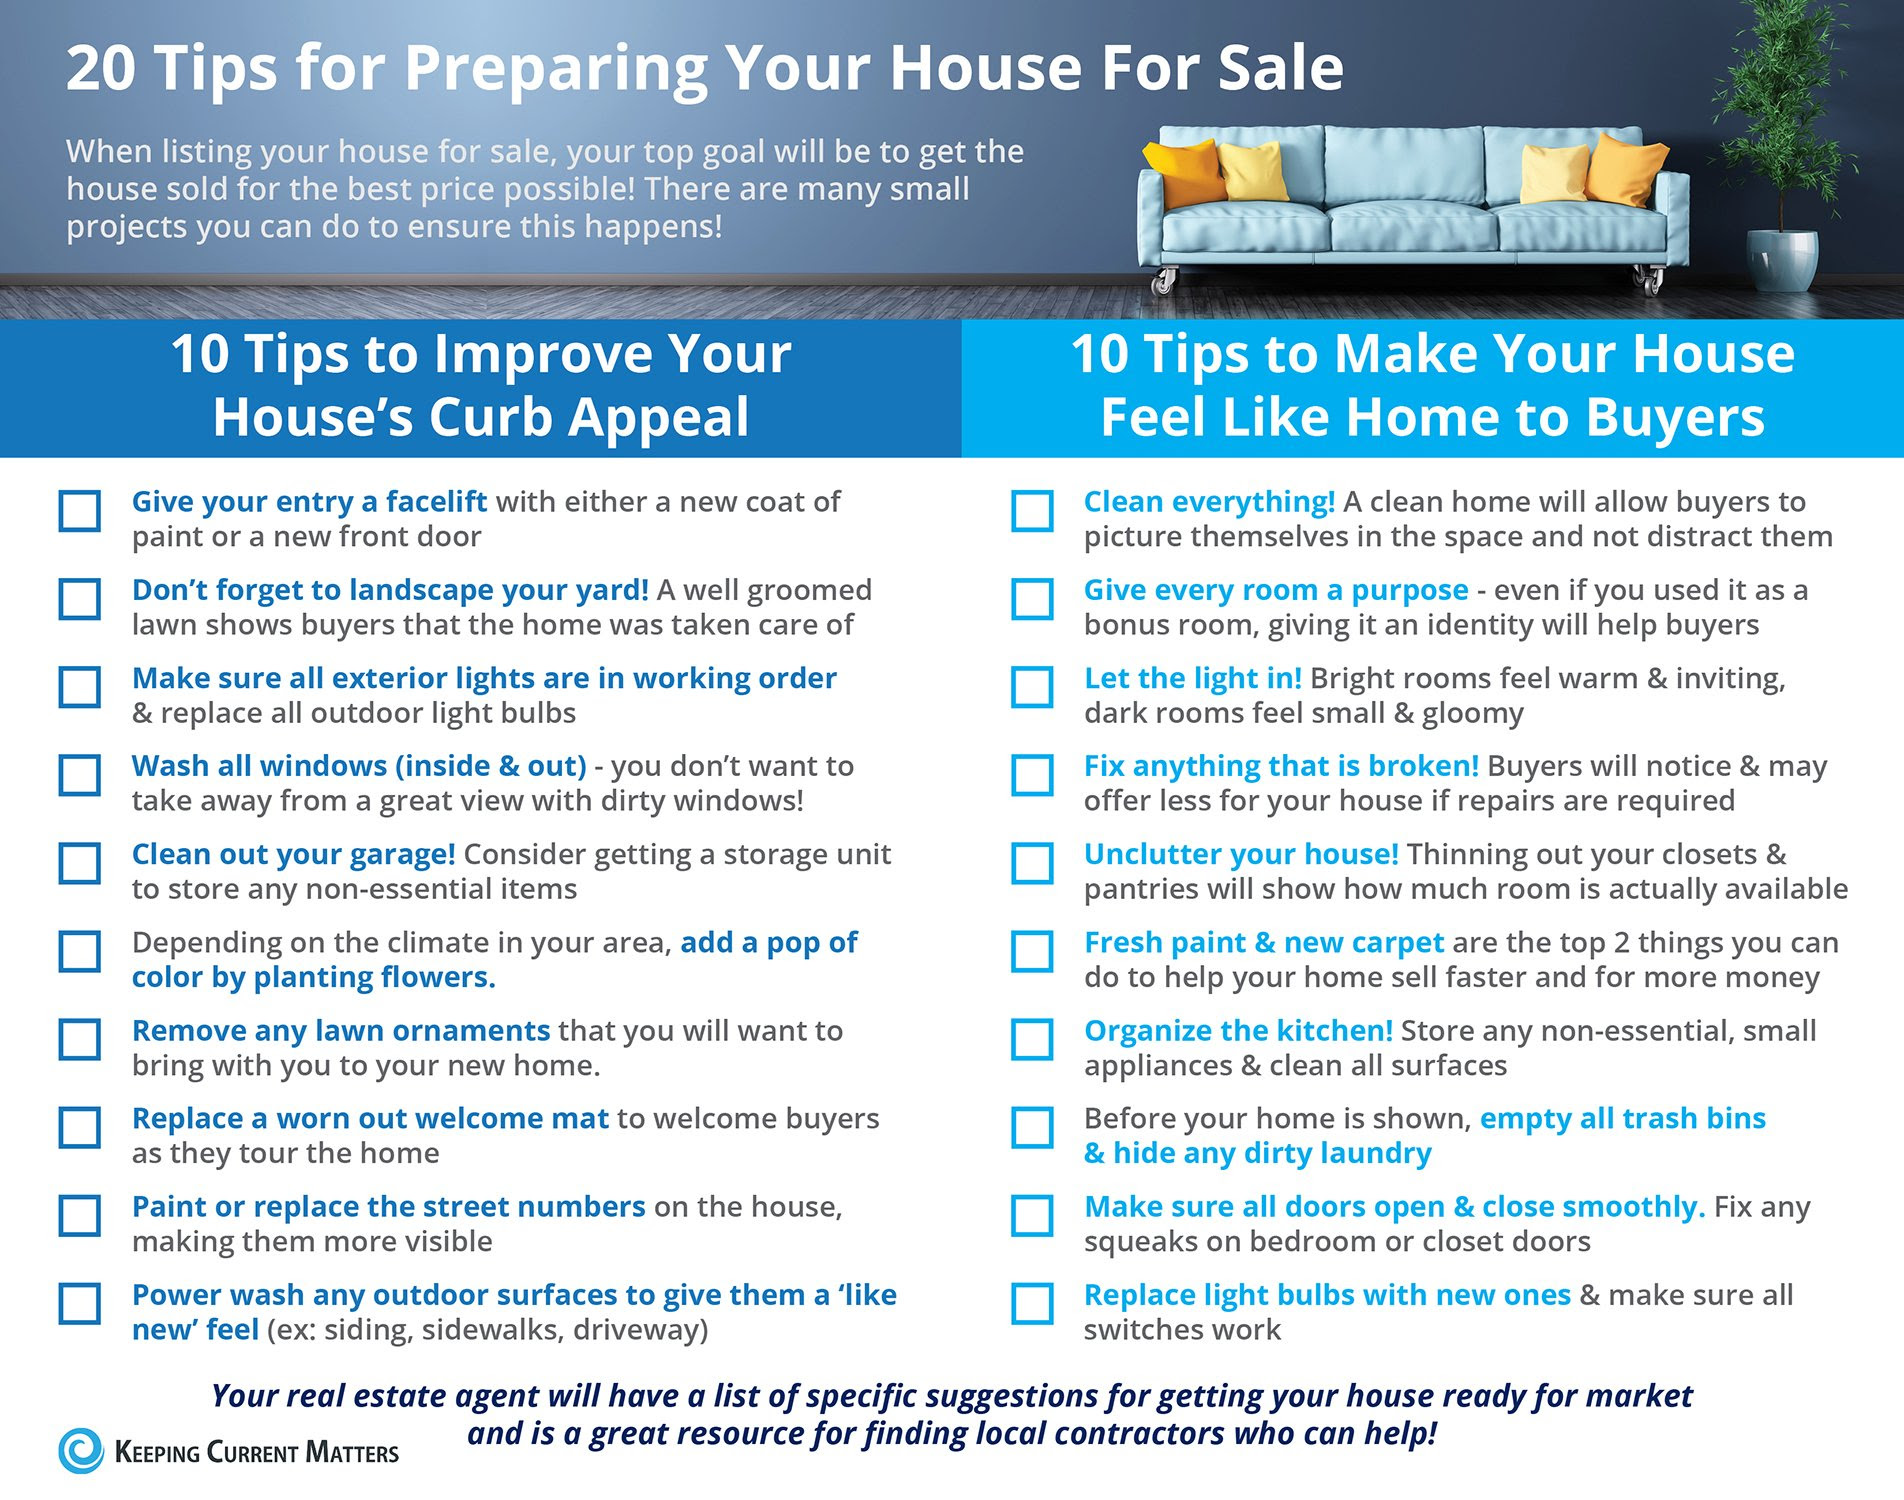 Tips for Preparing Your House for Sale This Spring [INFOGRAPHIC] | Keeping Current Matters